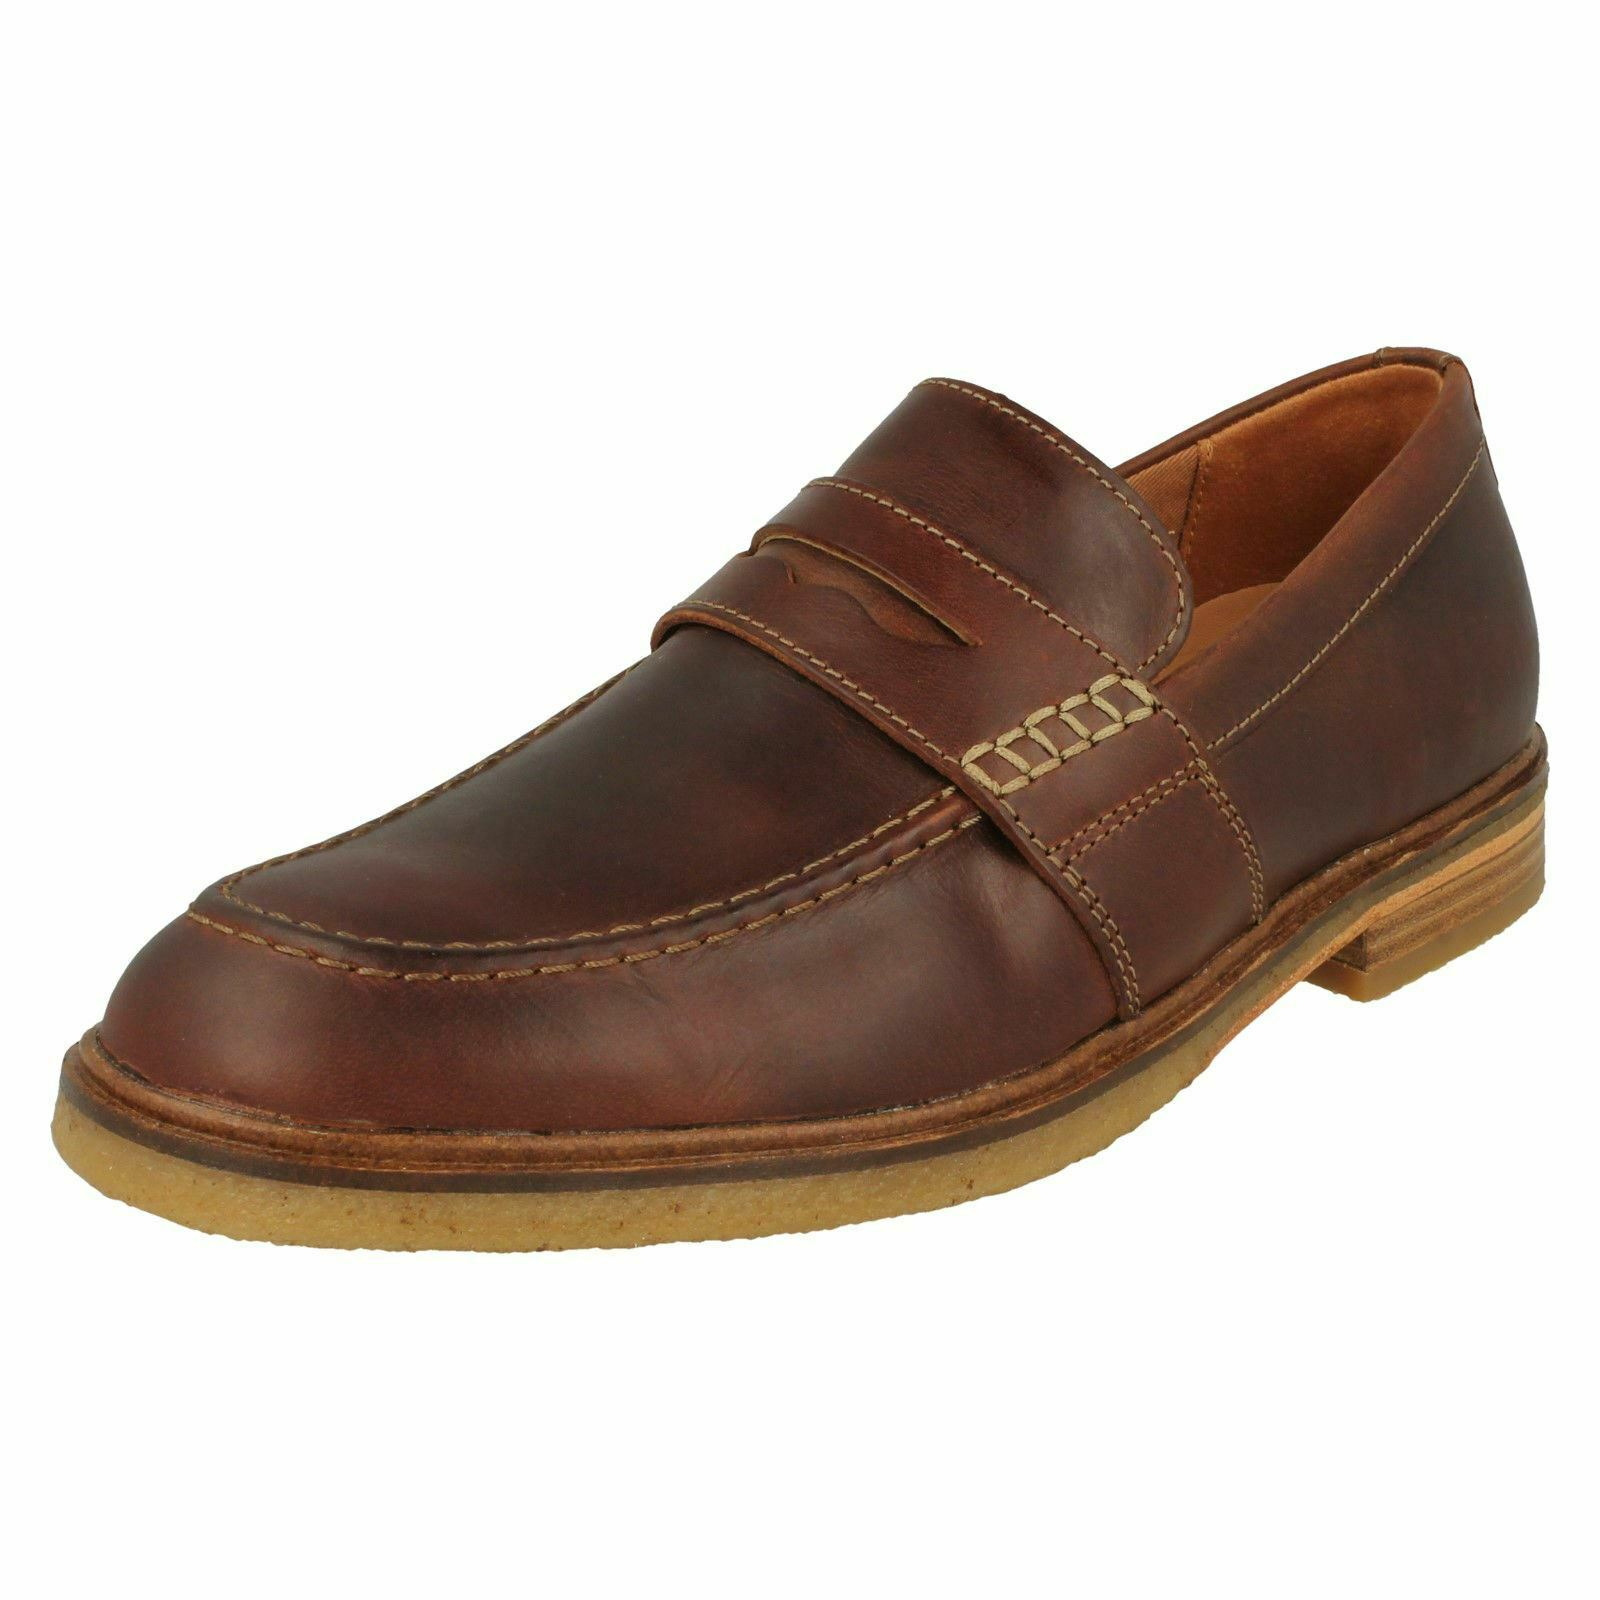 Mens Clarks Slip on Loafers Clarkdale Flow